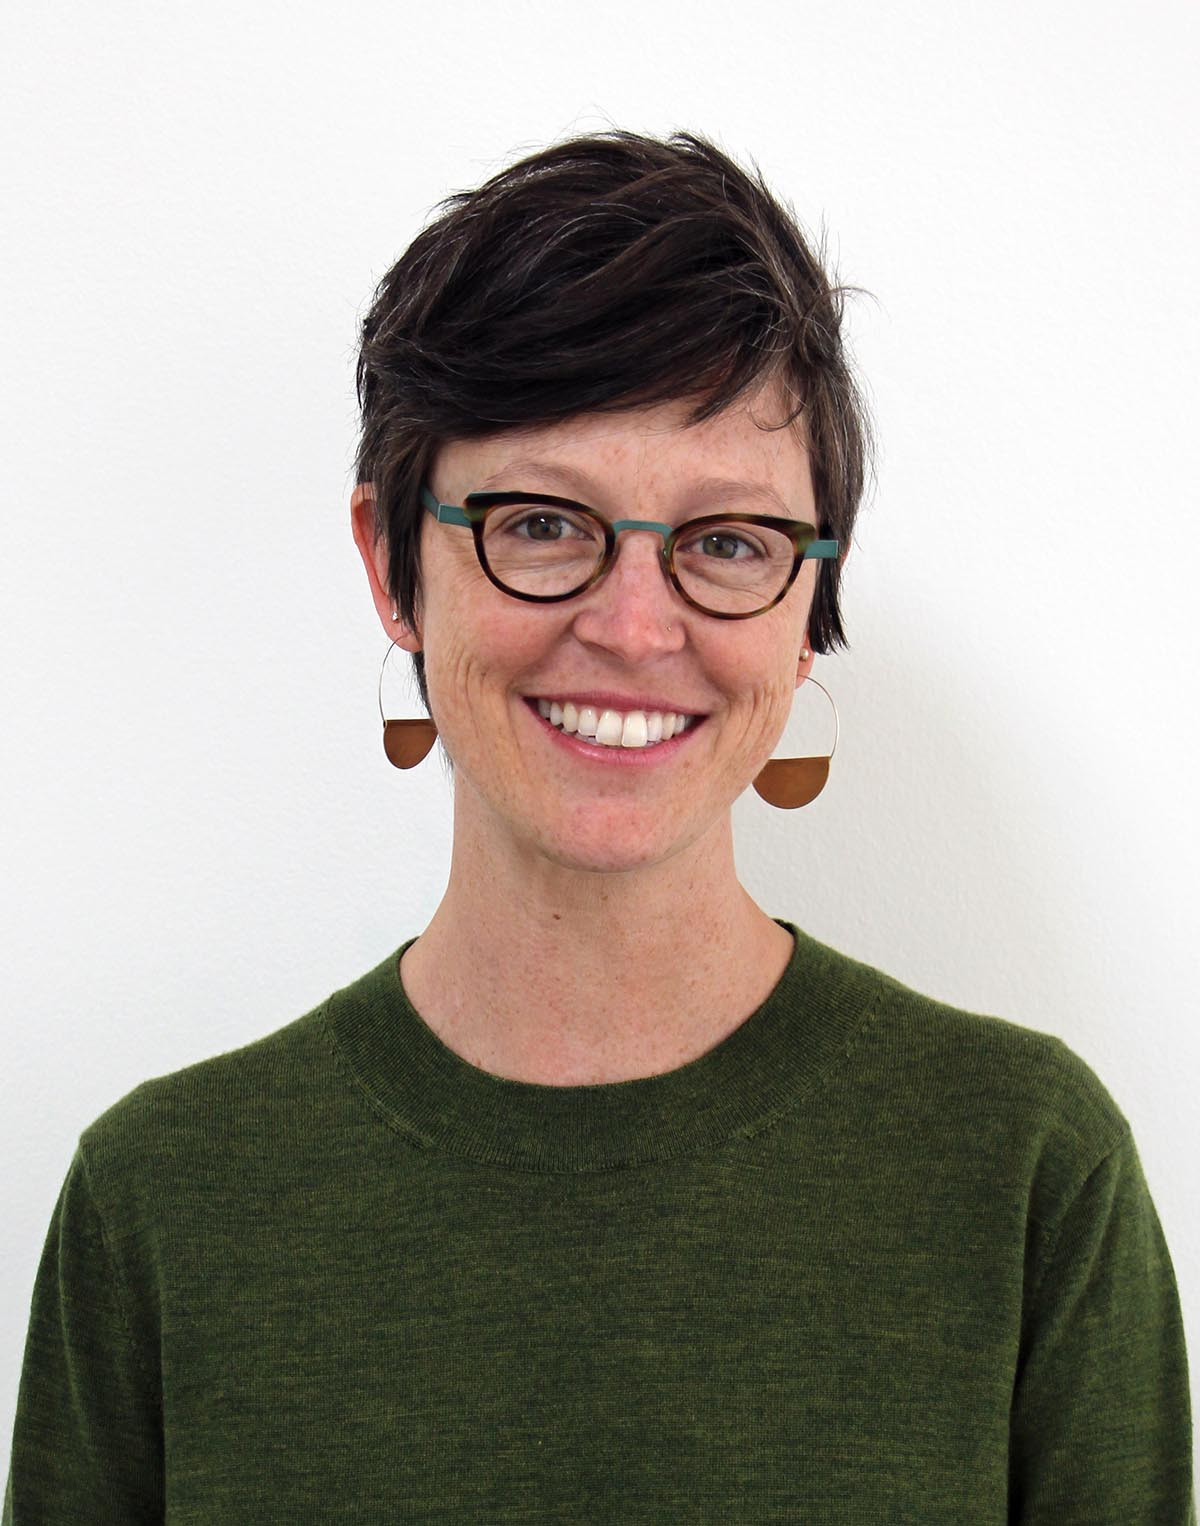 Leila Grothe, Associate Curator for Contemporary Art at The Baltimore Museum of Art